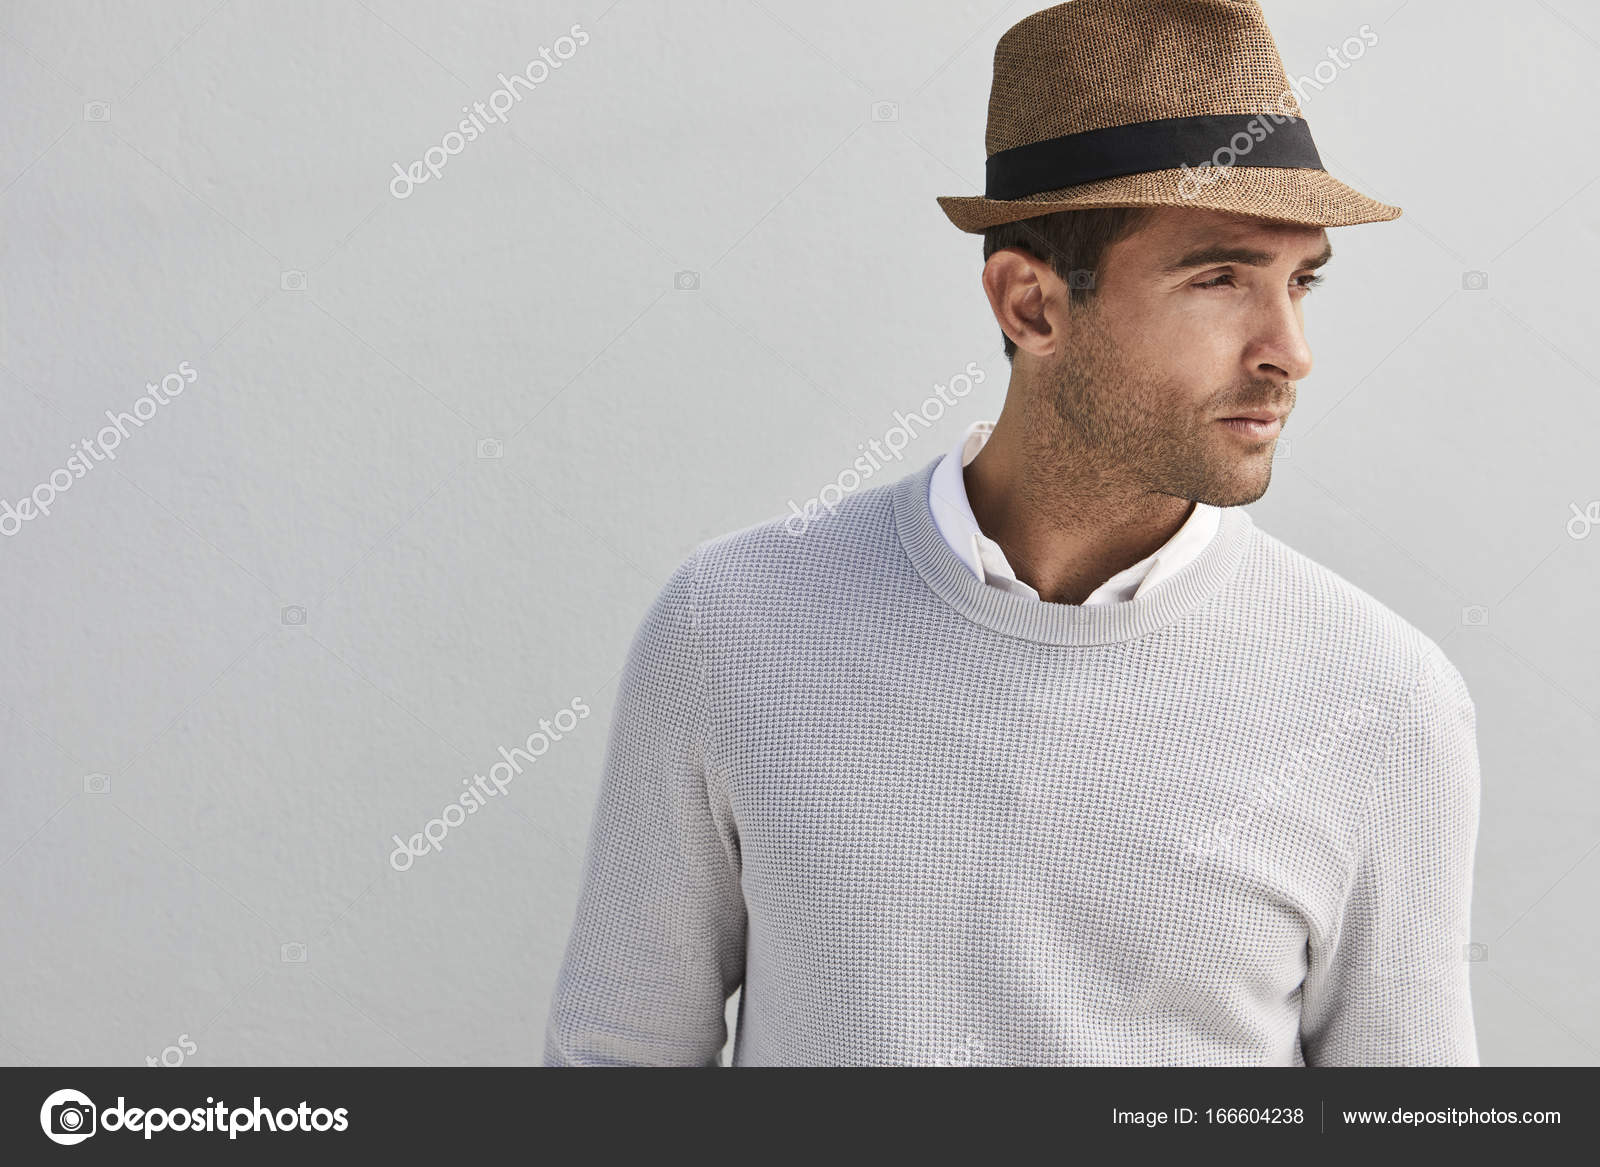 a90f7889d41d9 Handsome guy in hat — Stock Photo © sanneberg  166604238